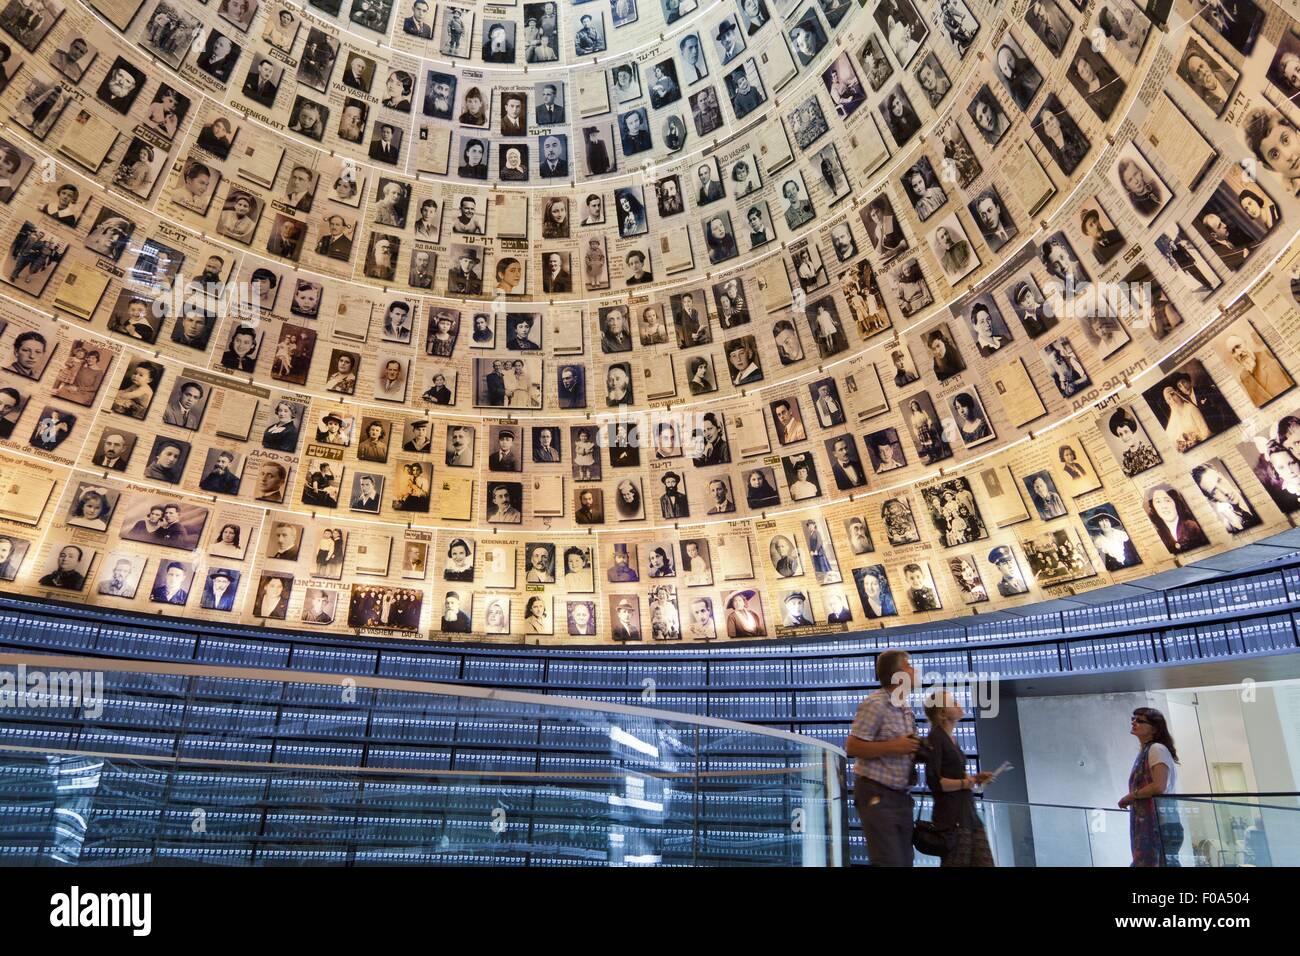 Low angle view of people at Hall of Names in Yad Vashem Memorial, Jerusalem, Israel - Stock Image